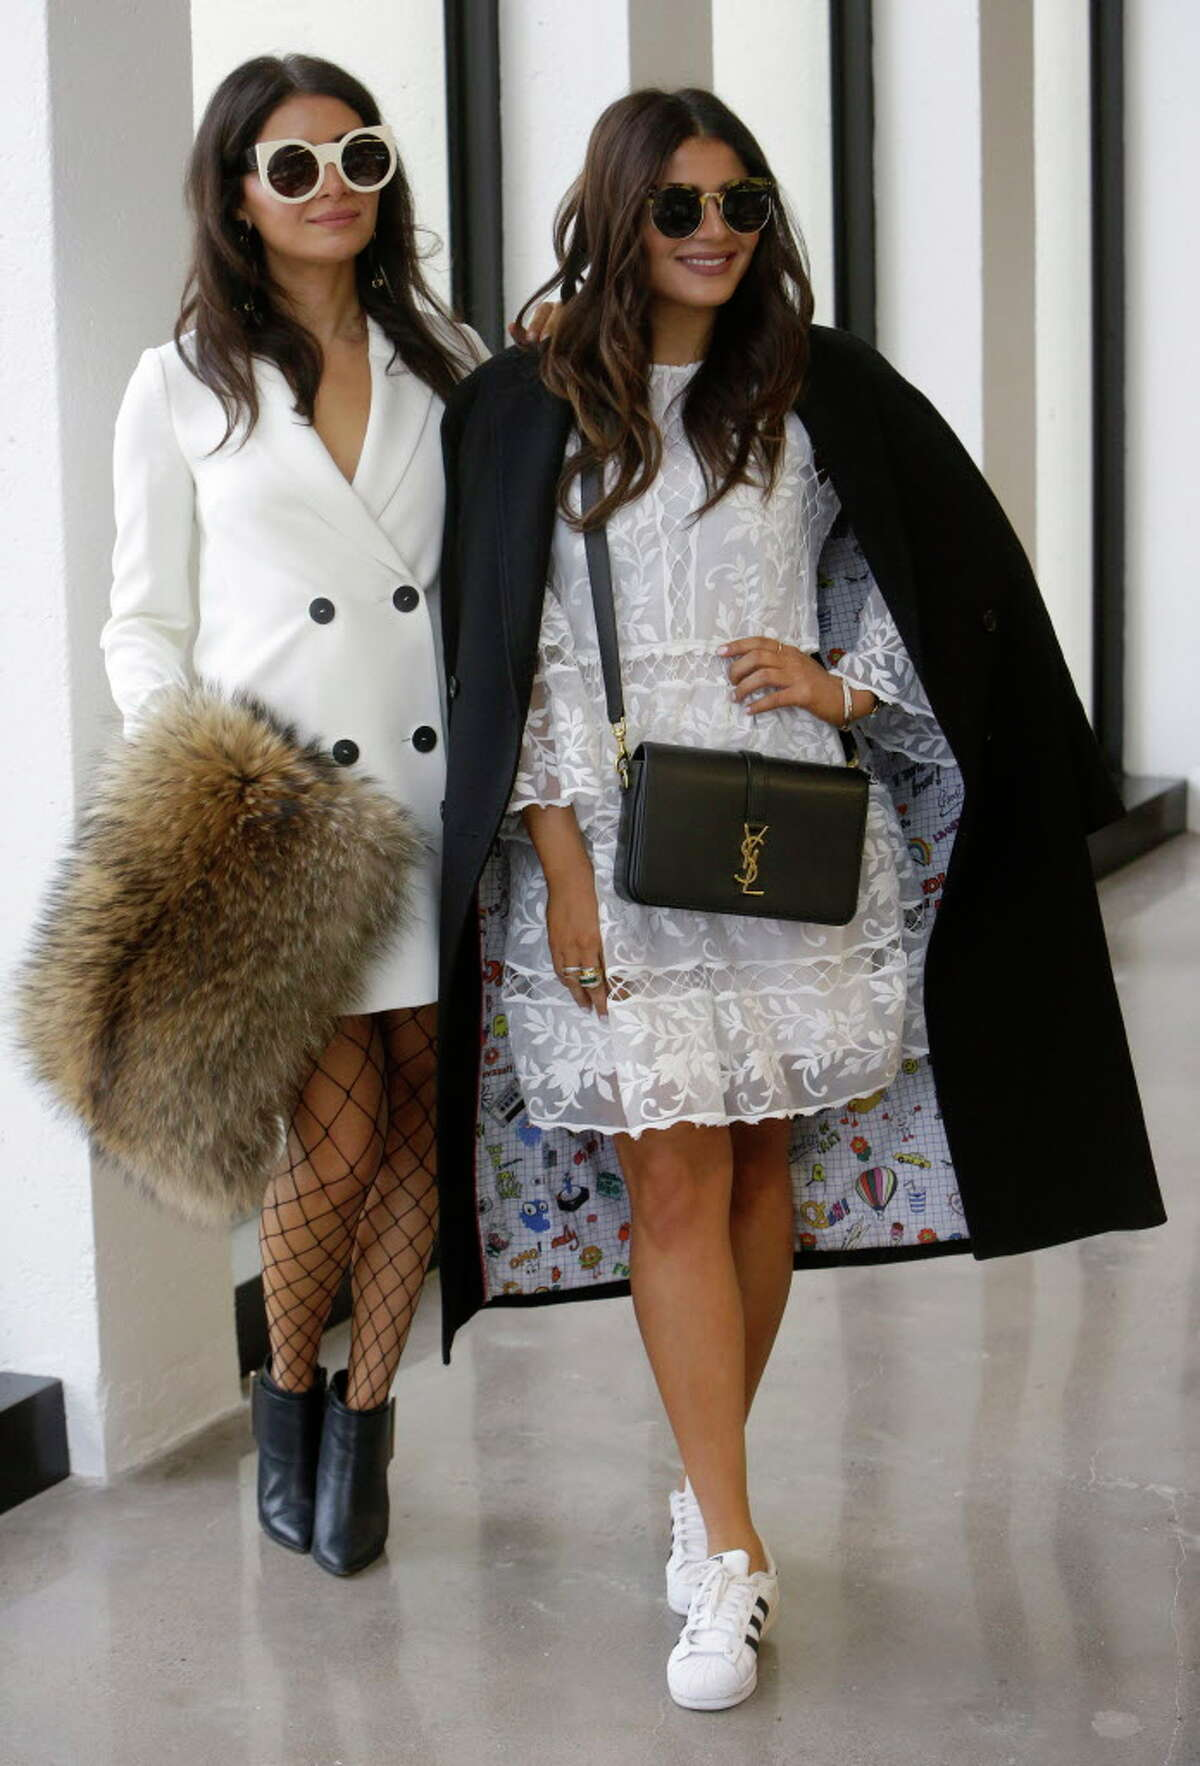 Bloggers Saba Jawda, left, and Sarah Jawda, right, give a brief runway style fashion show at the Houston Chronicle Monday, Dec. 12, 2016 as a preview for Houston's Day For Night festival.